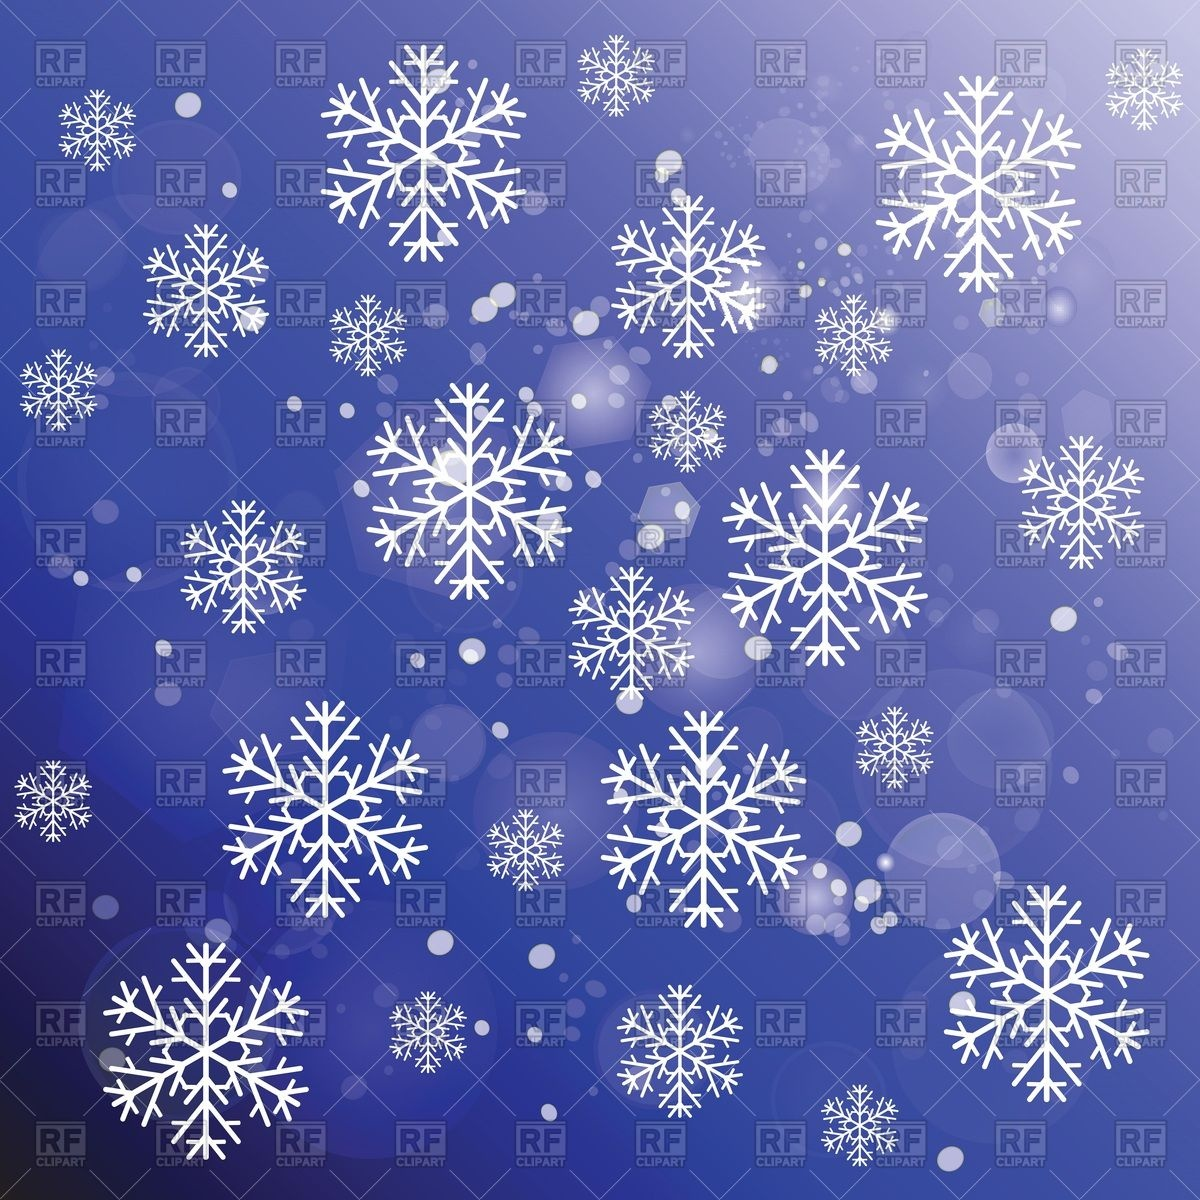 Free Download Snowflakes On Blue Winter Background Vector Image Of Backgrounds 1200x1200 For Your Desktop Mobile Tablet Explore 40 Winter Backgrounds Free Beautiful Winter Wallpaper Free